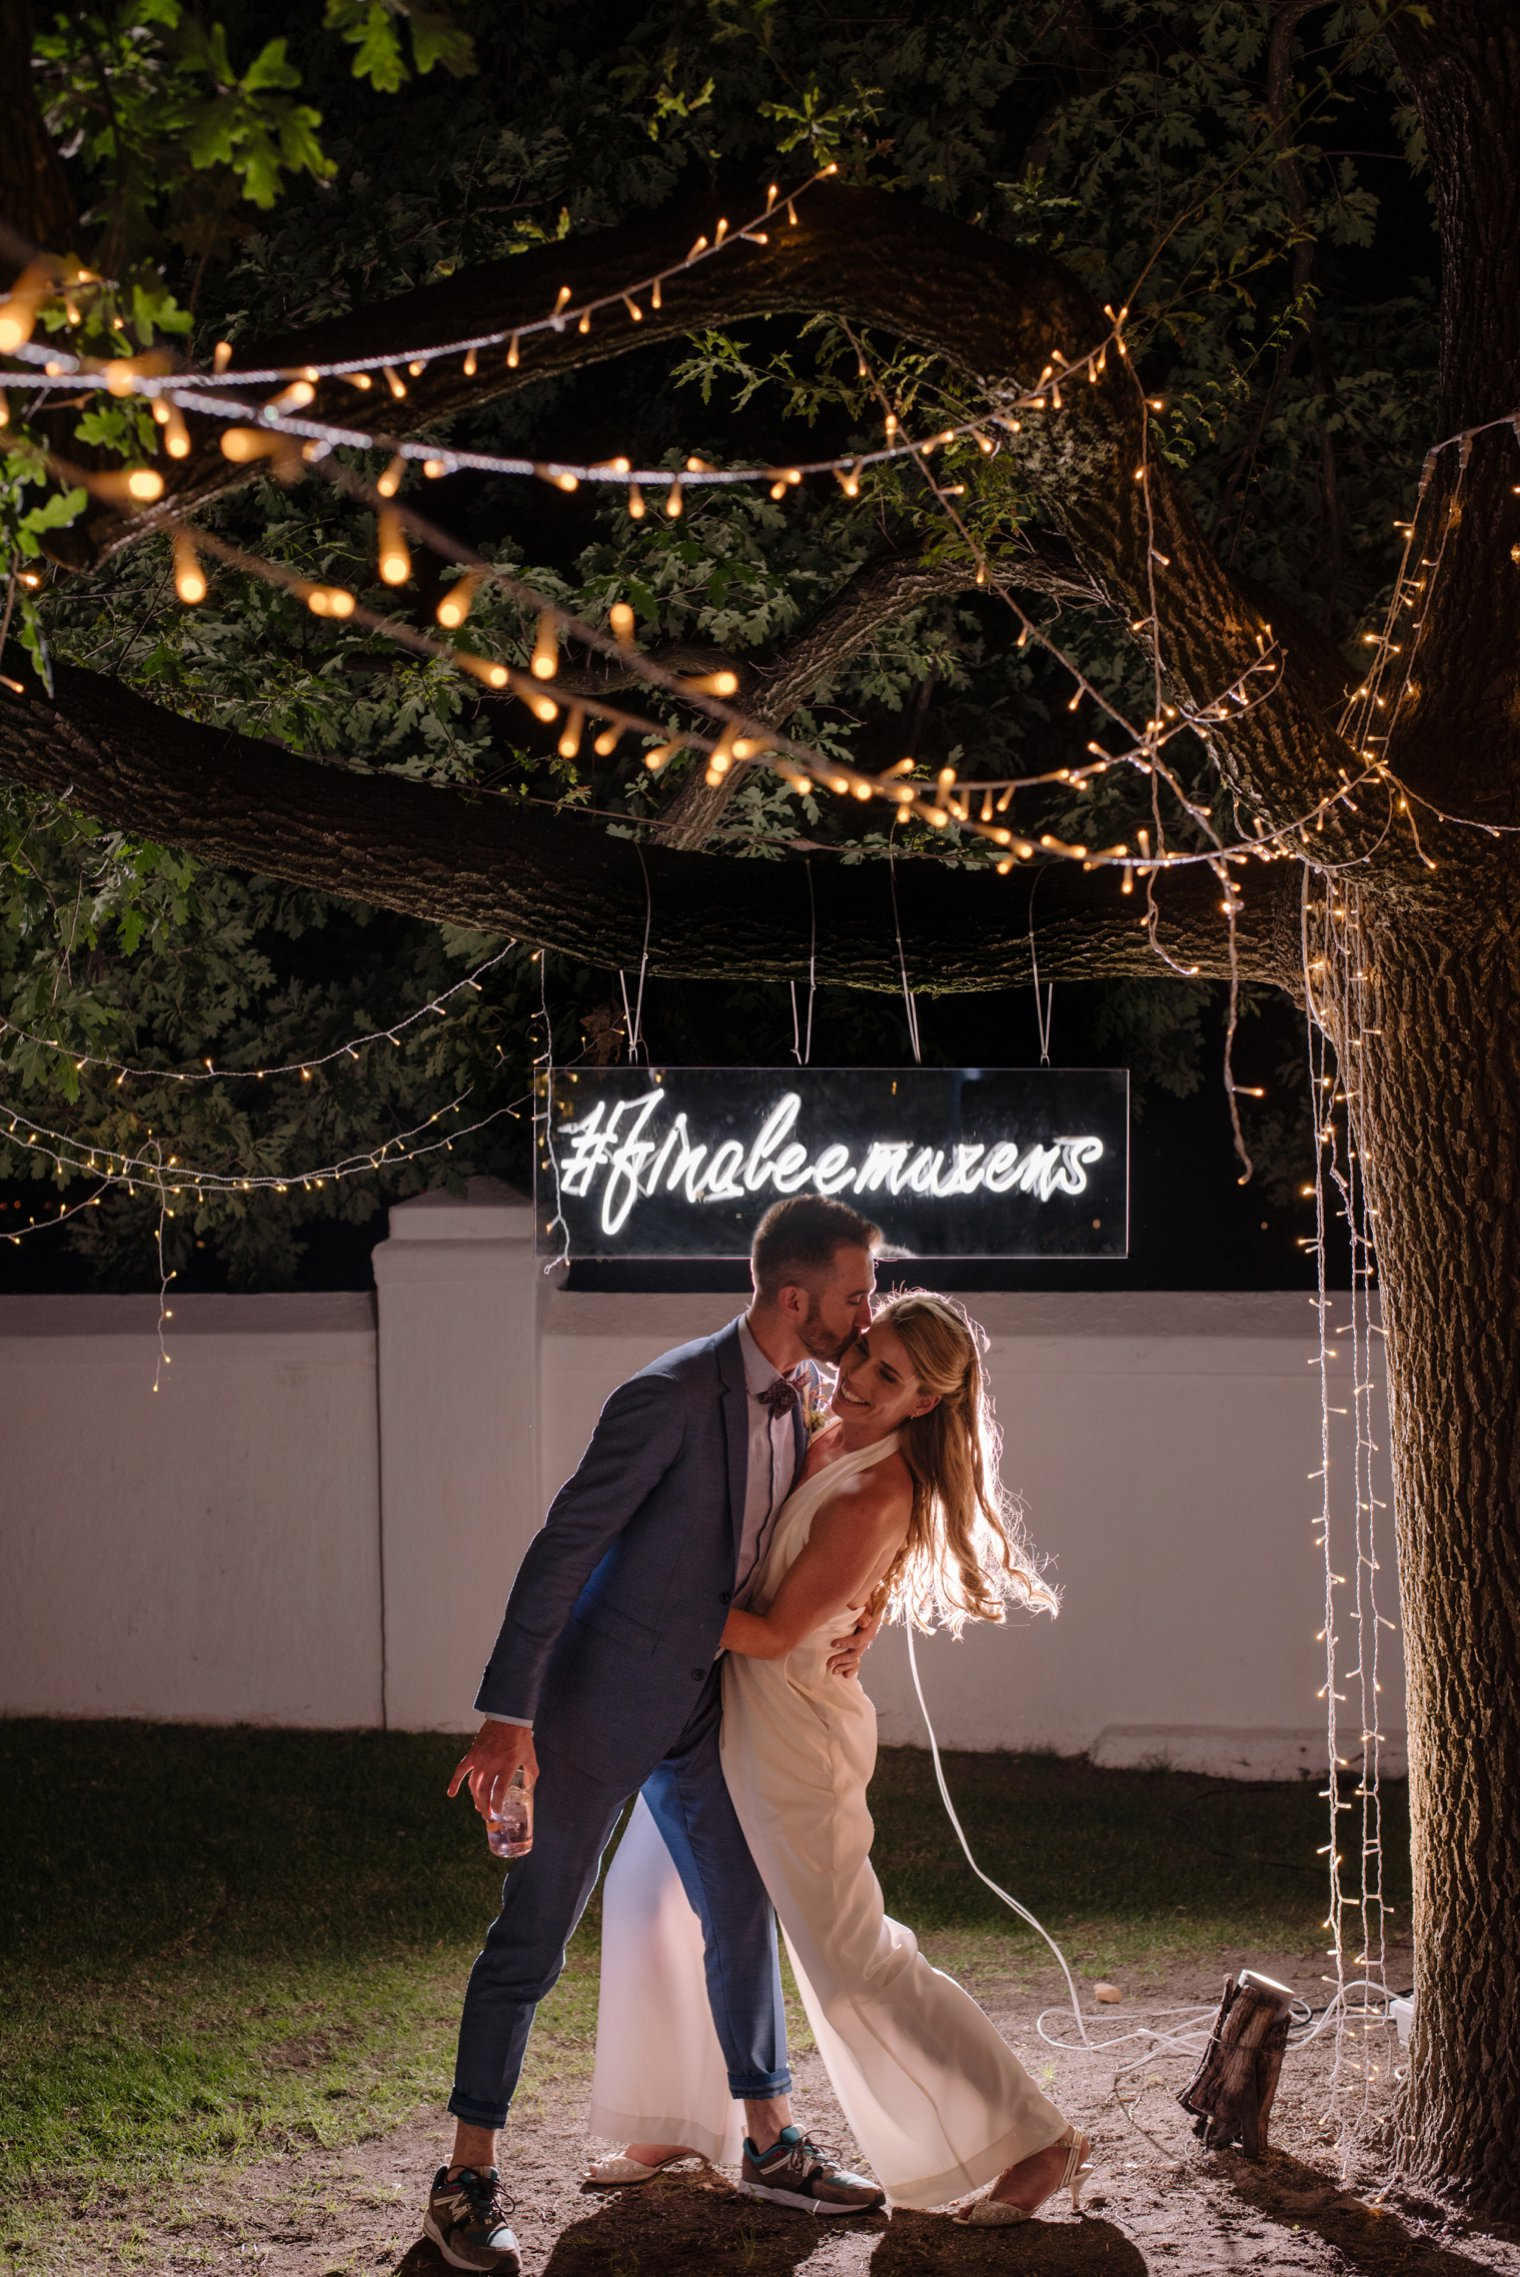 wedding portrait with neon sign